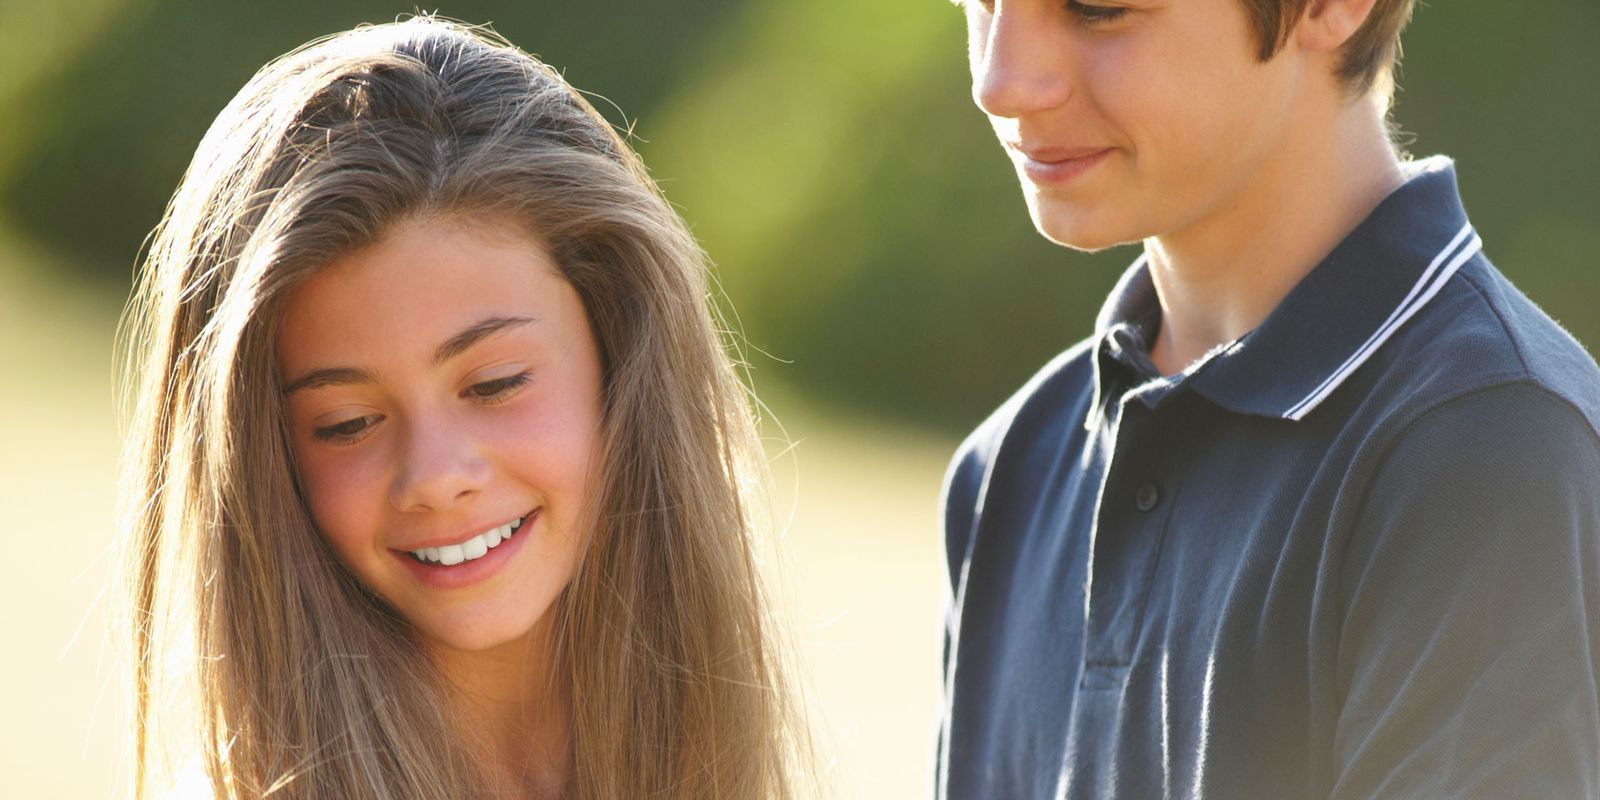 Single and sober hookup guidelines for teens